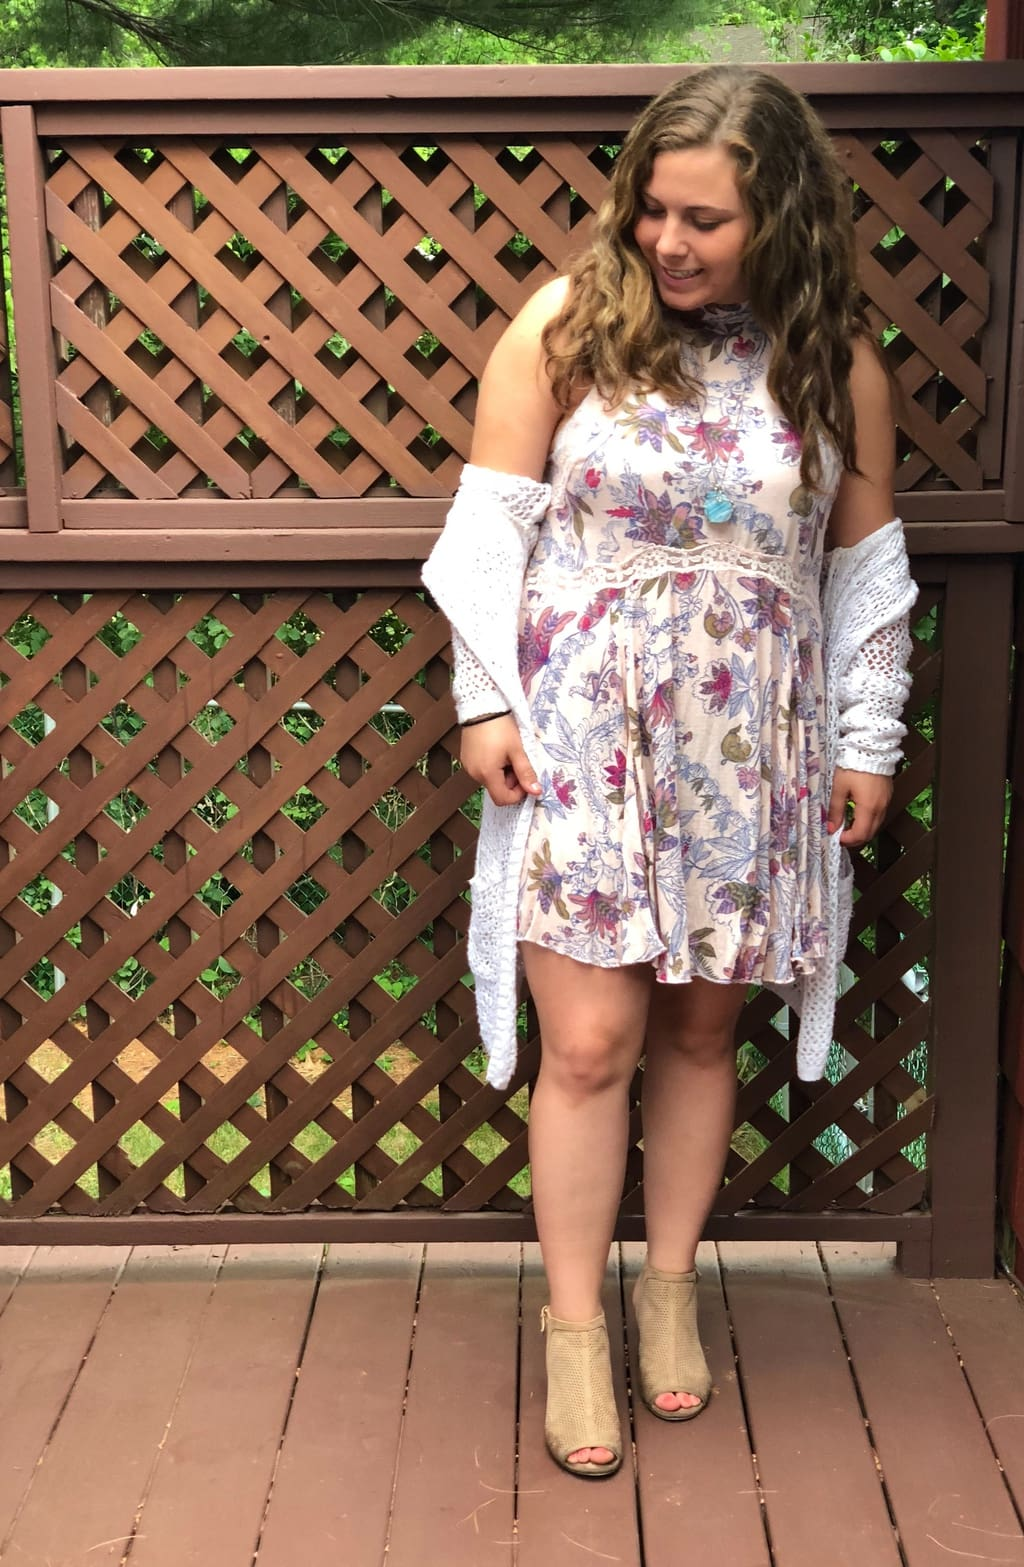 UMass Amherst Student Hannah wears a simple floral high-neck cream dress with a lace empire waist, a white open knit cardigan, and taupe peep-toe heeled booties.